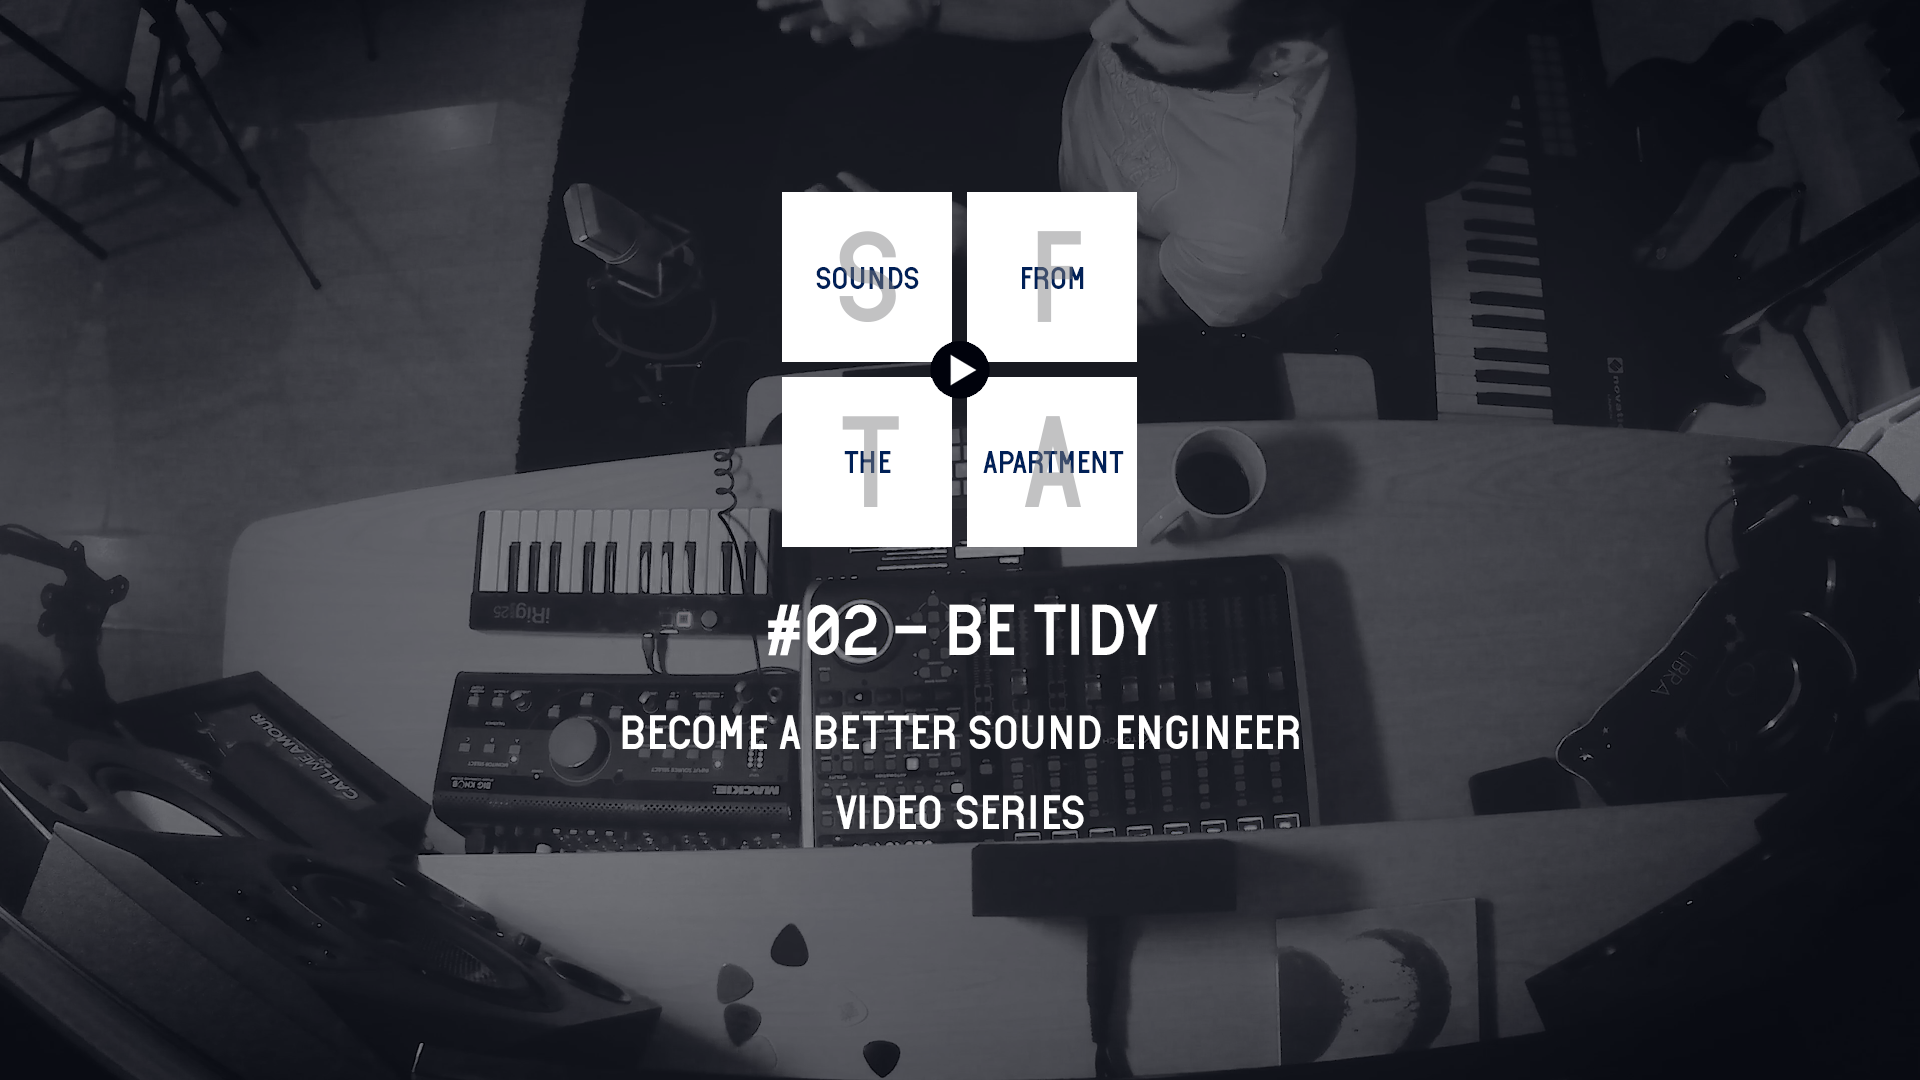 Be Tidy Become A Better Sound Engineer